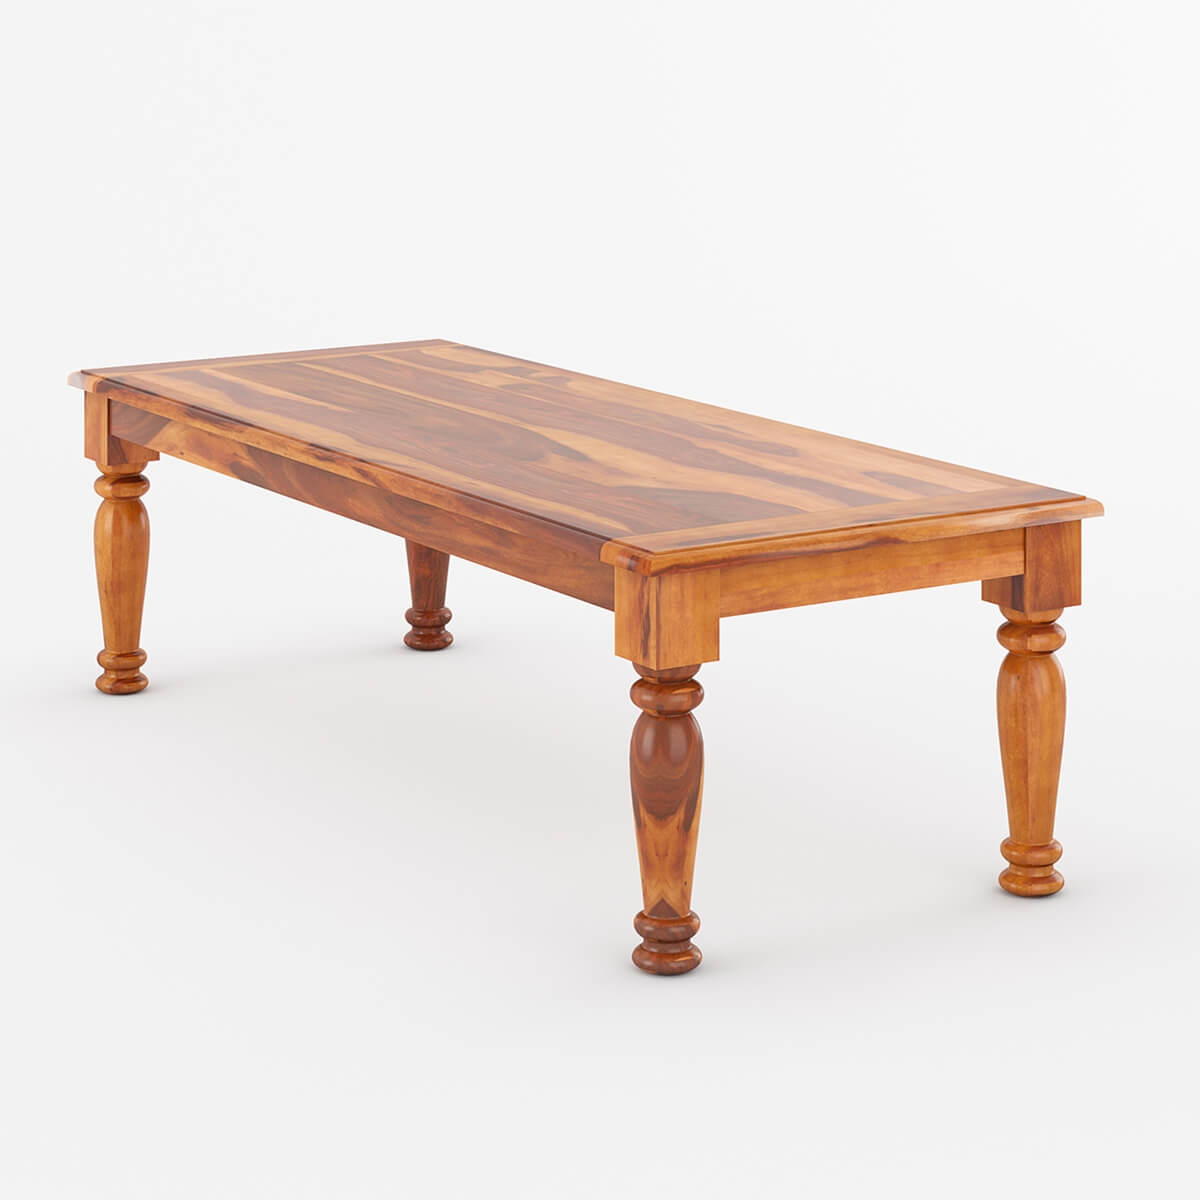 130quot Rustic Solid Wood Rectangular Large Dining Room Table  : 4577 from www.sierralivingconcepts.com size 1200 x 1200 jpeg 58kB